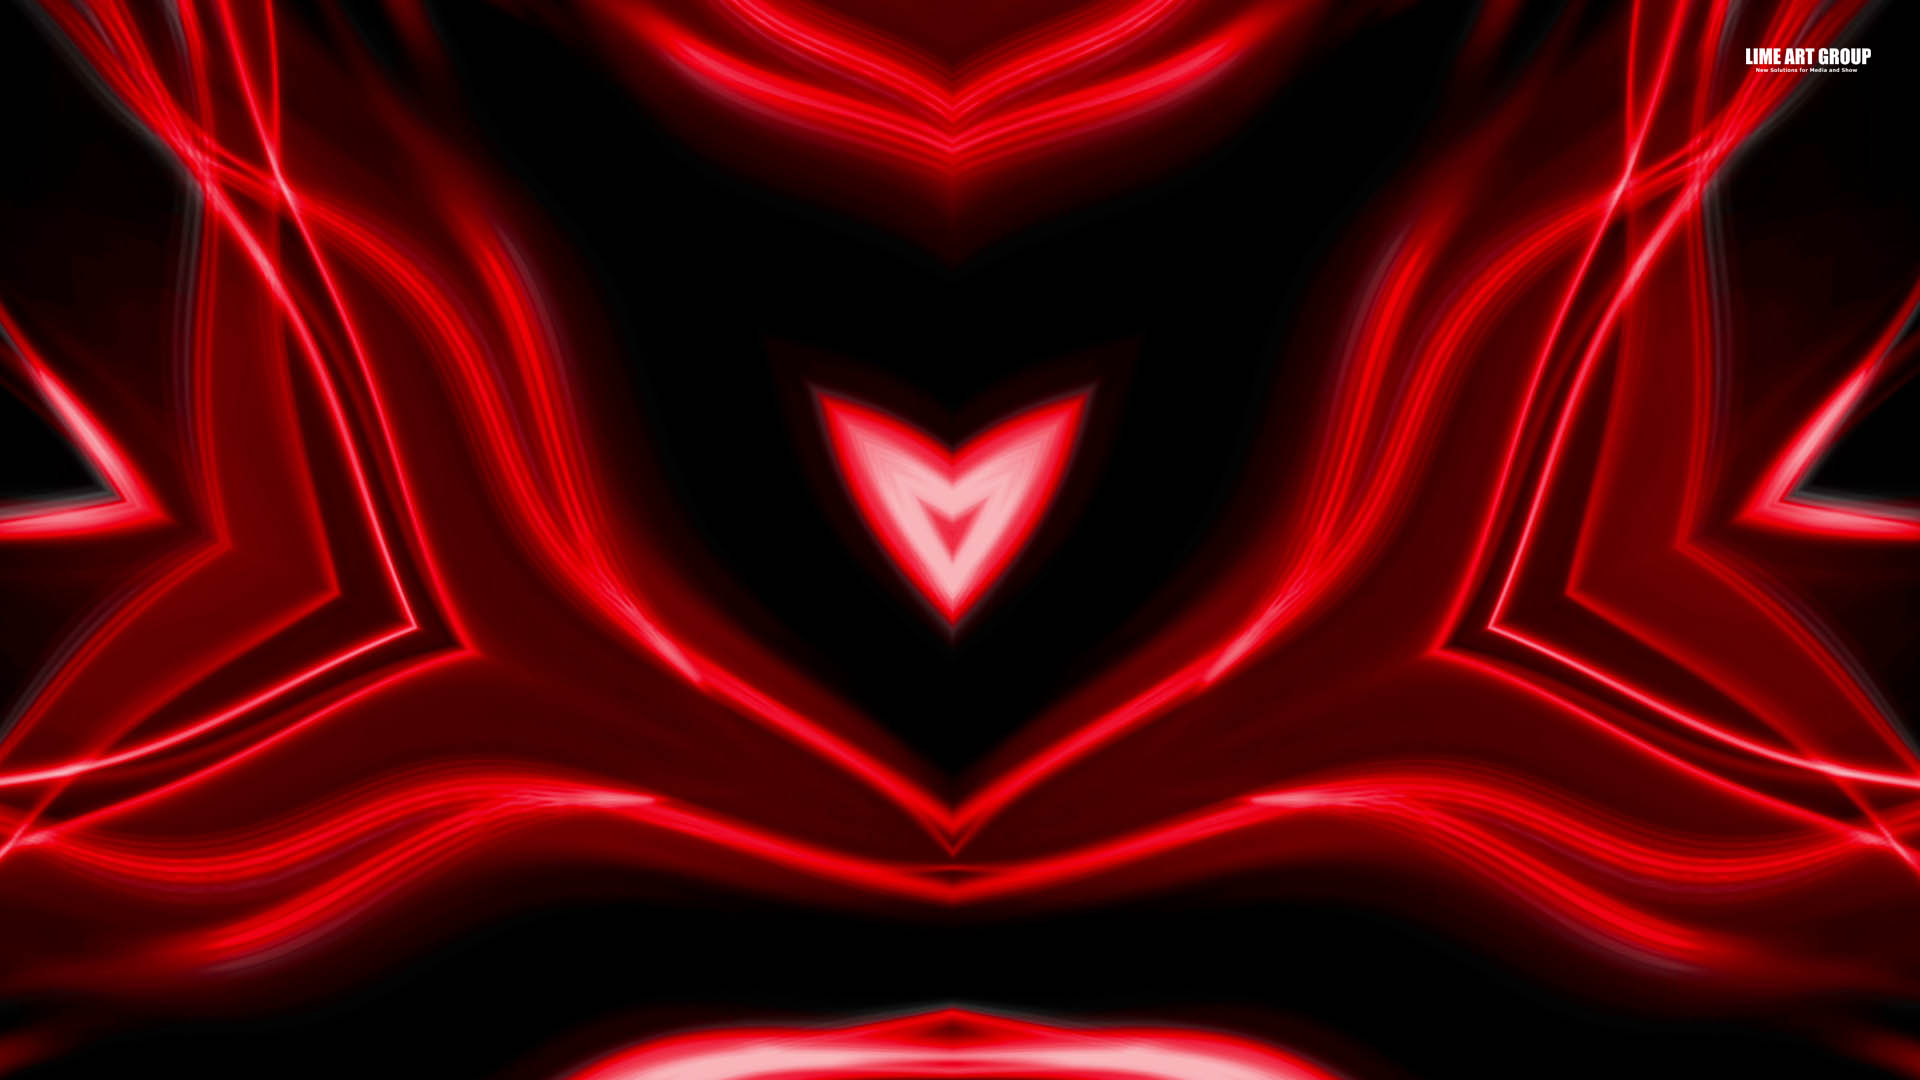 Video Loops, Red color vj loops abstract 4